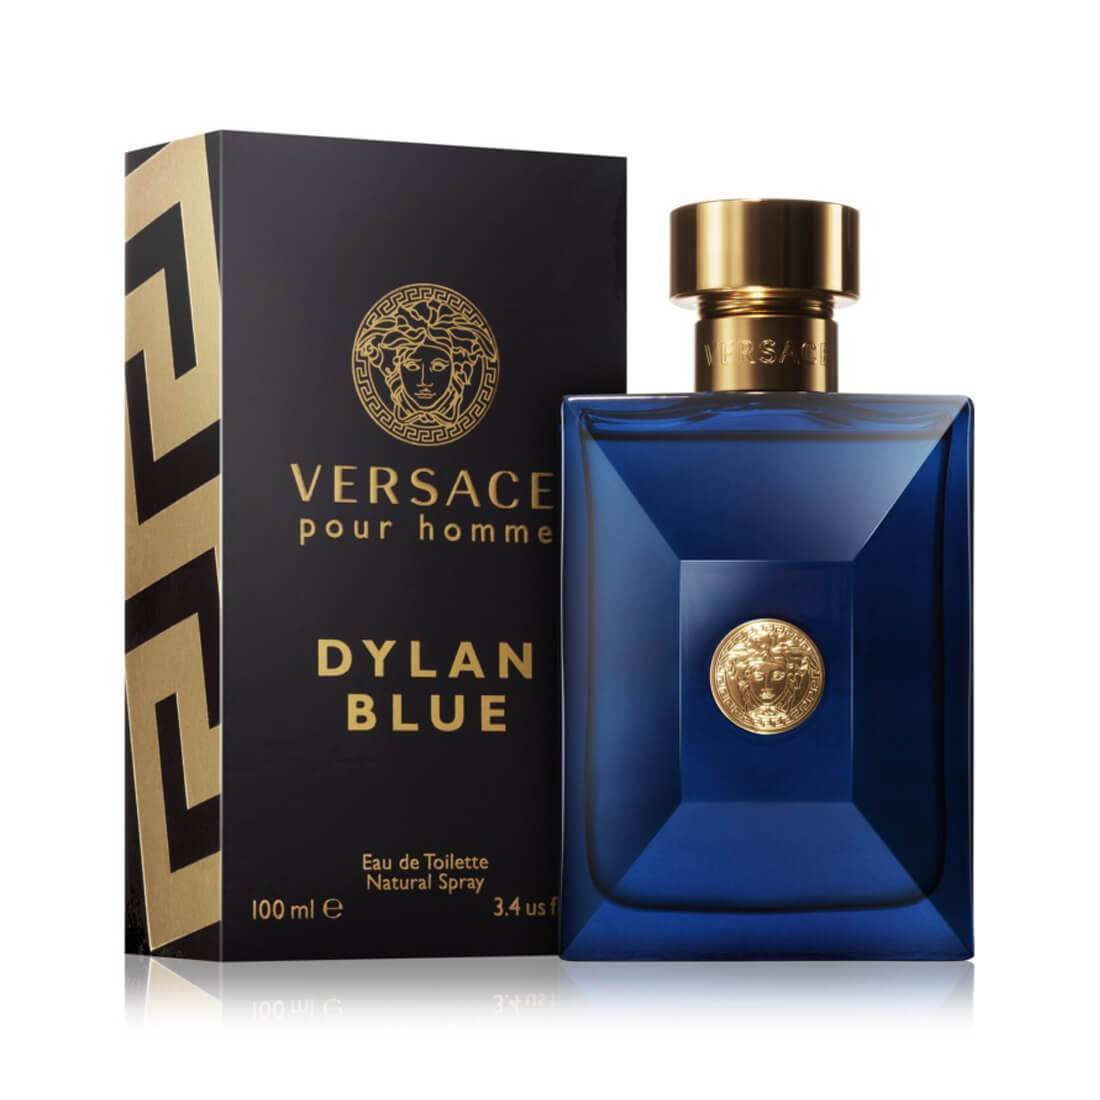 Versace Pour Homme Dylan Blue EDT Perfume For Men - 100ml